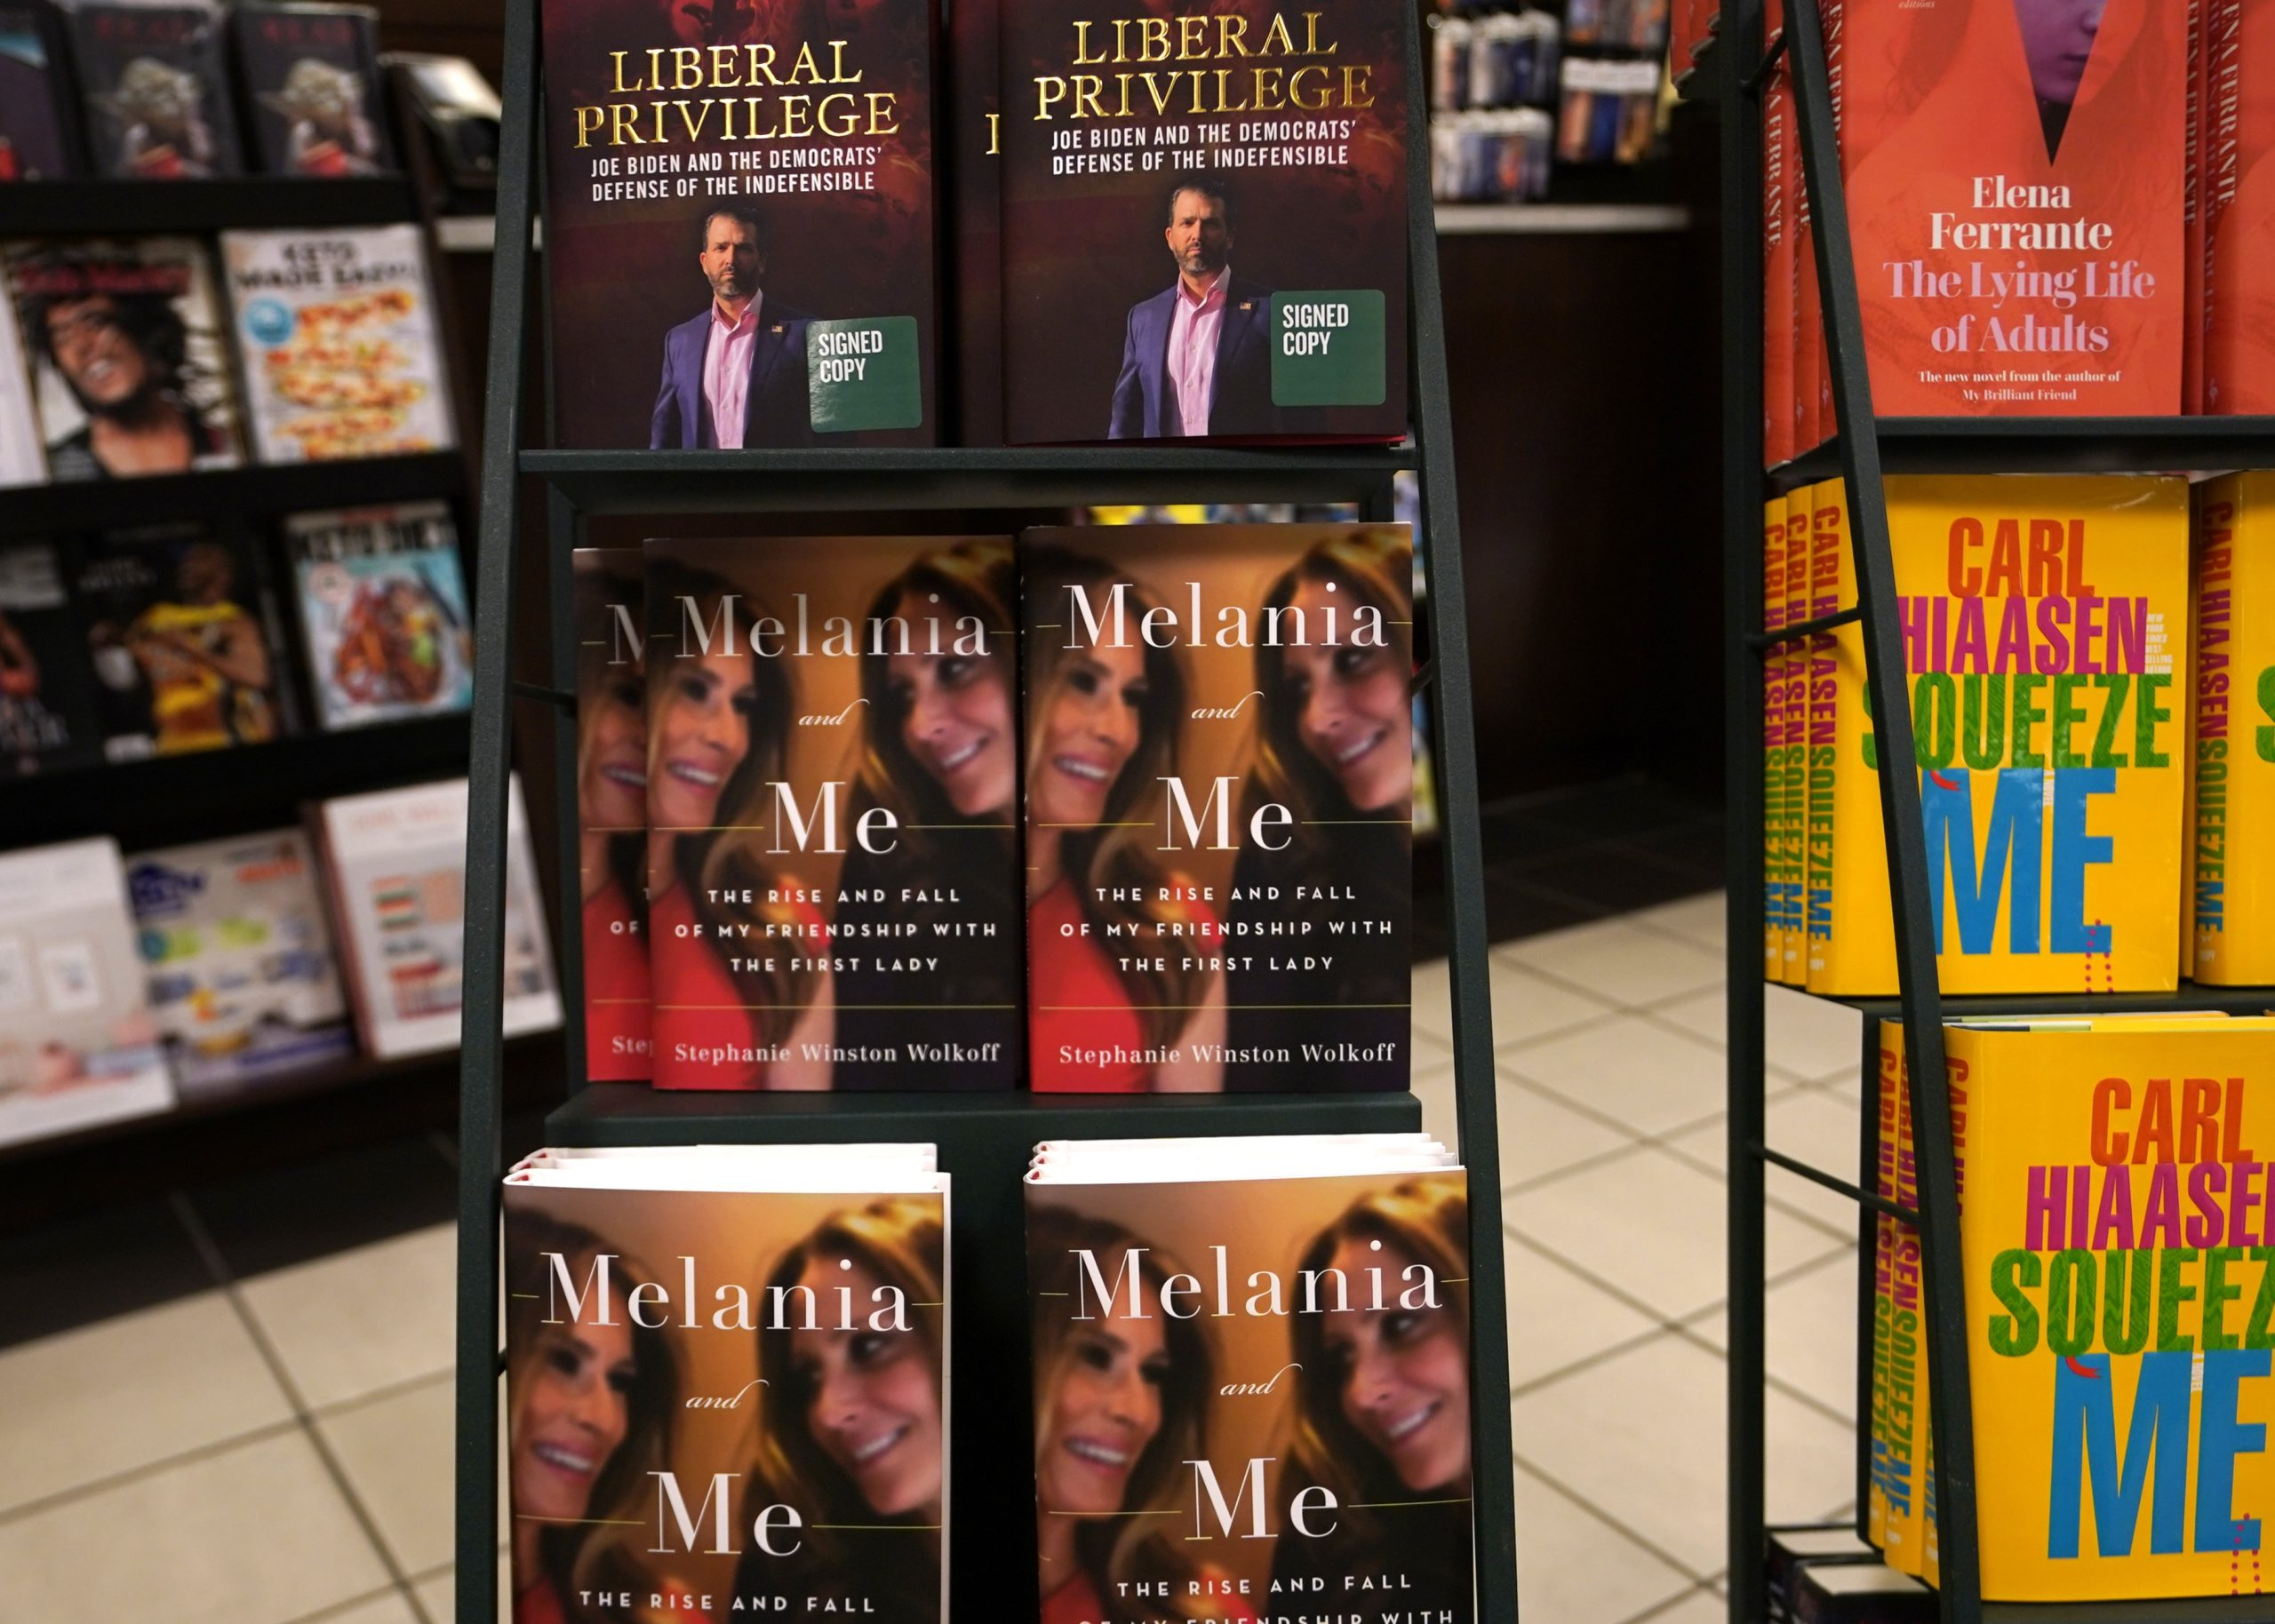 """The book """"Melania and Me: The Rise and Fall of My Friendship with the First Lady"""" by Stephanie Winston Wolkoff is viewed on display at Barnes & Noble bookstore on 5th Avenue in New York on September 1, 2020 (Photo by TIMOTHY A. CLARY / AFP) (Photo by TIMOTHY A. CLARY/AFP via Getty Images)"""